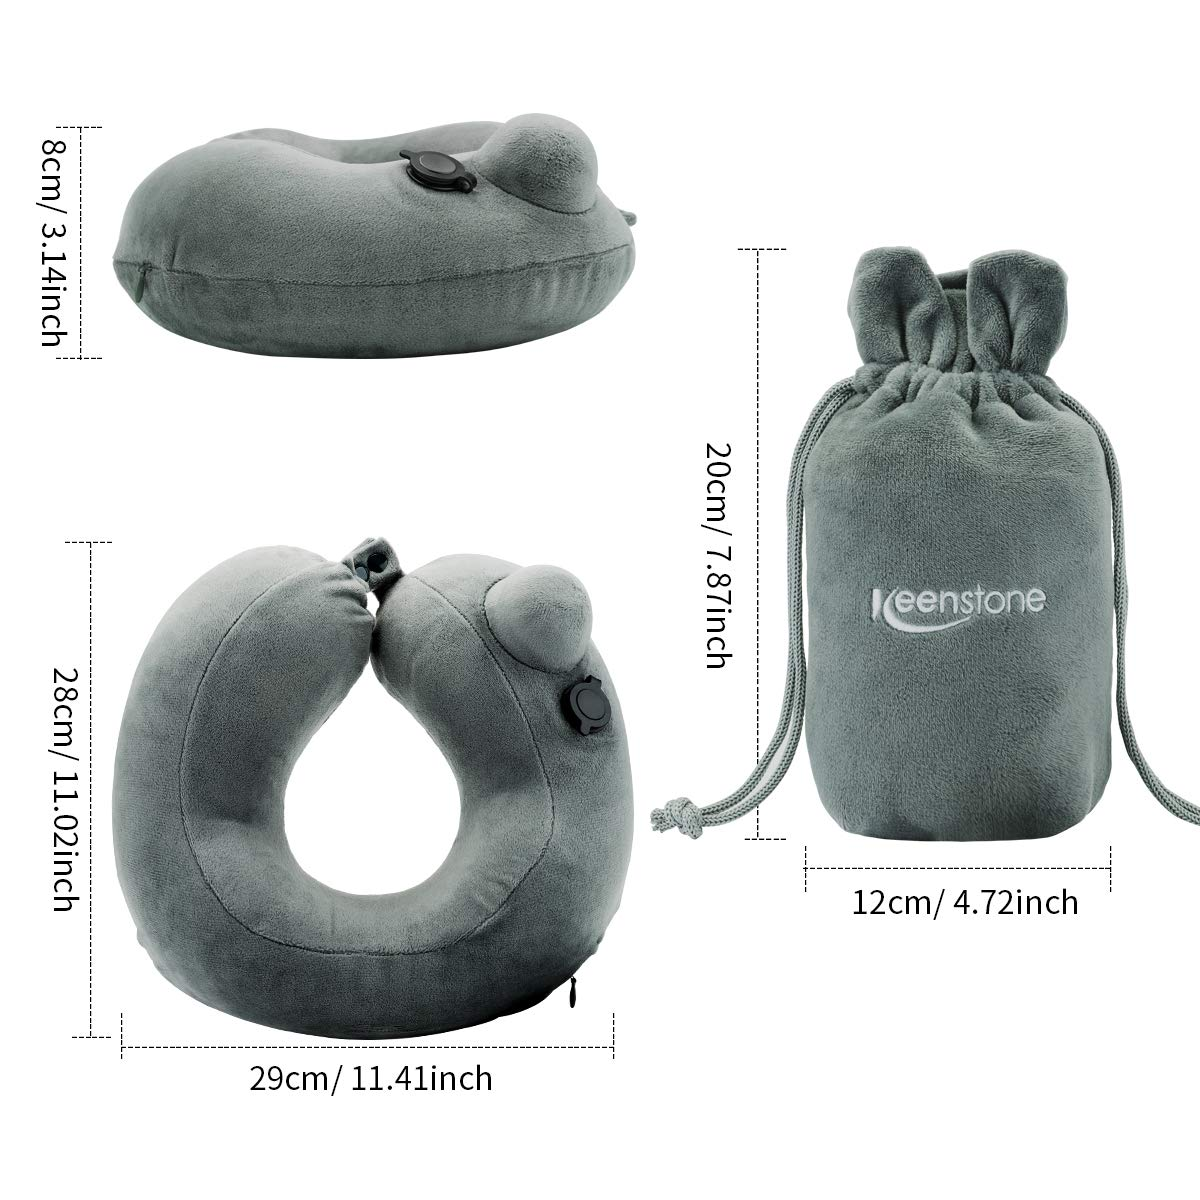 Keenstone Inflatable Neck Travel Pillow, Lightweight Support Camping Pillow with Ear Plugs, Eye Mask and Drawstring Bag, Ergonomic, Patented & Best Adjustable for Airplane, Auto, Bus, Train, Office